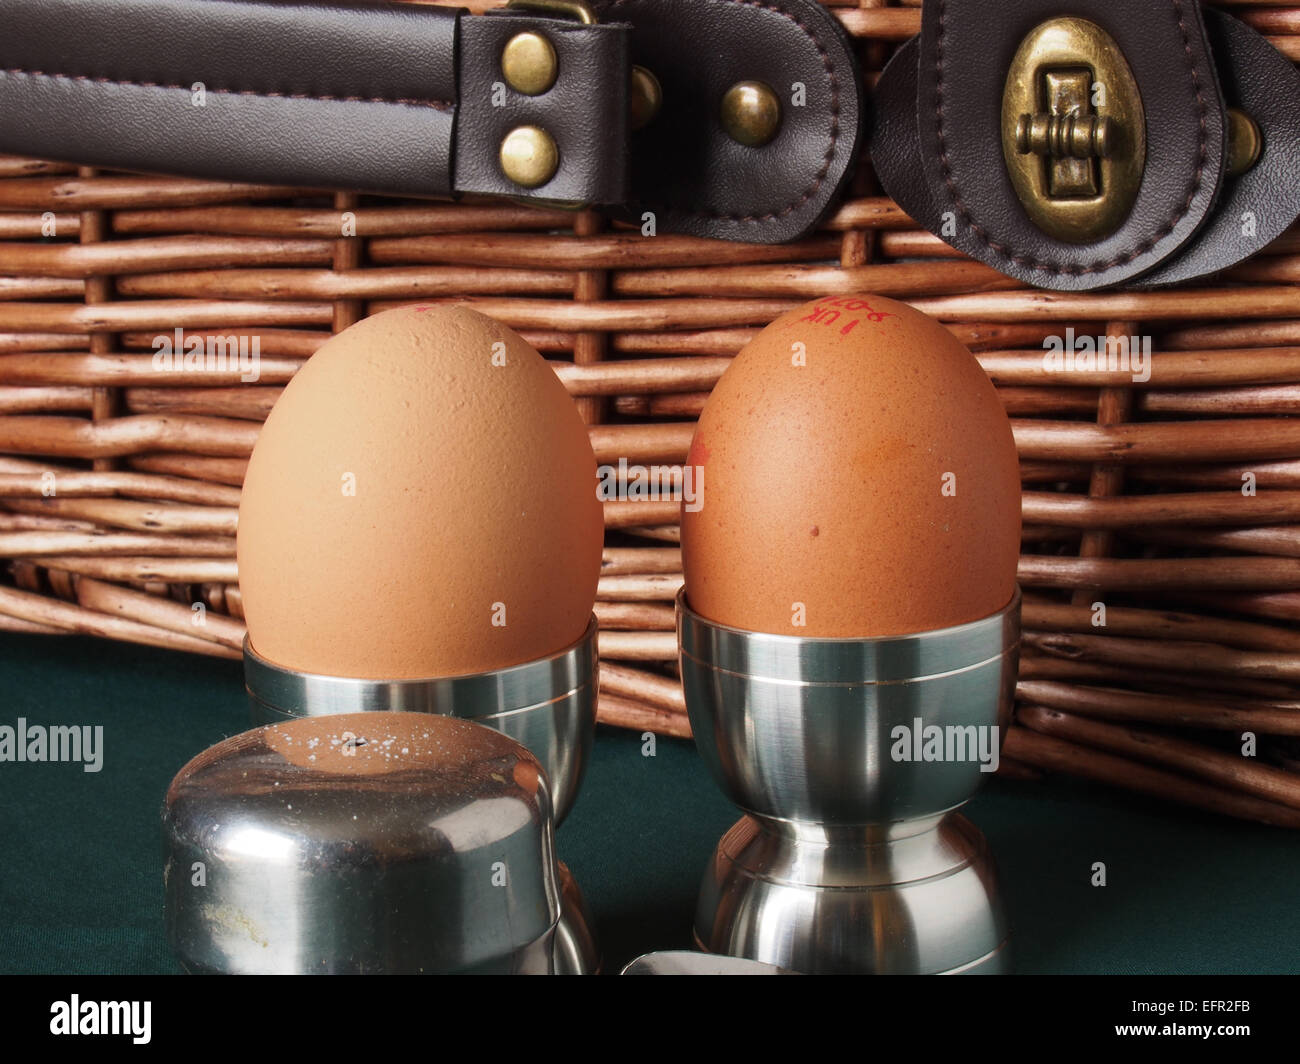 Boiled eggs in egg cups with salt cellar and picnic hamper - Stock Image